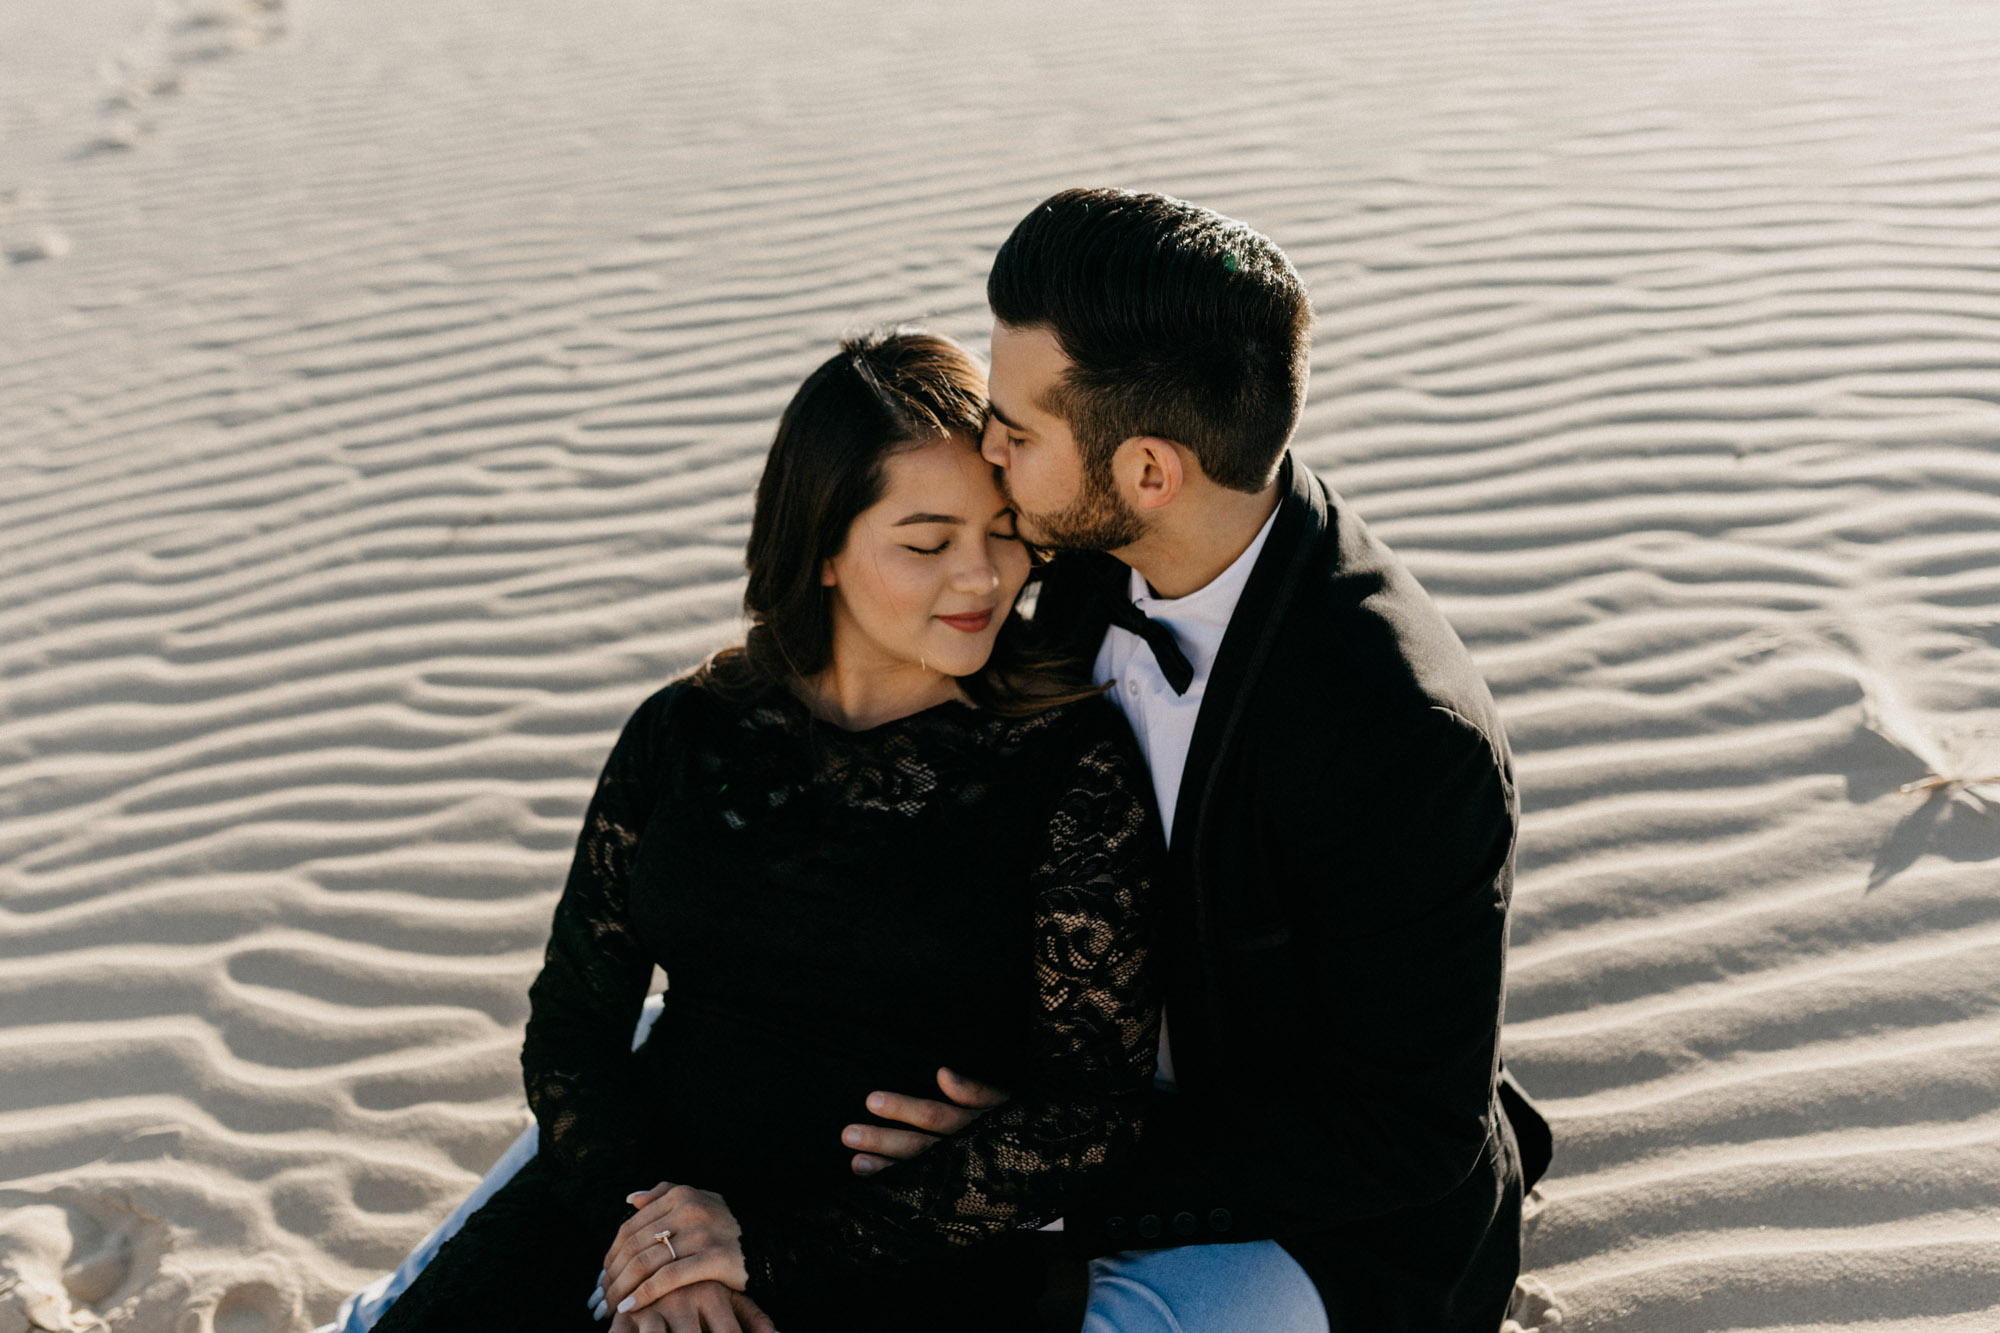 North Texas adventure photographer captures emotional engagement session at Sandhills state park